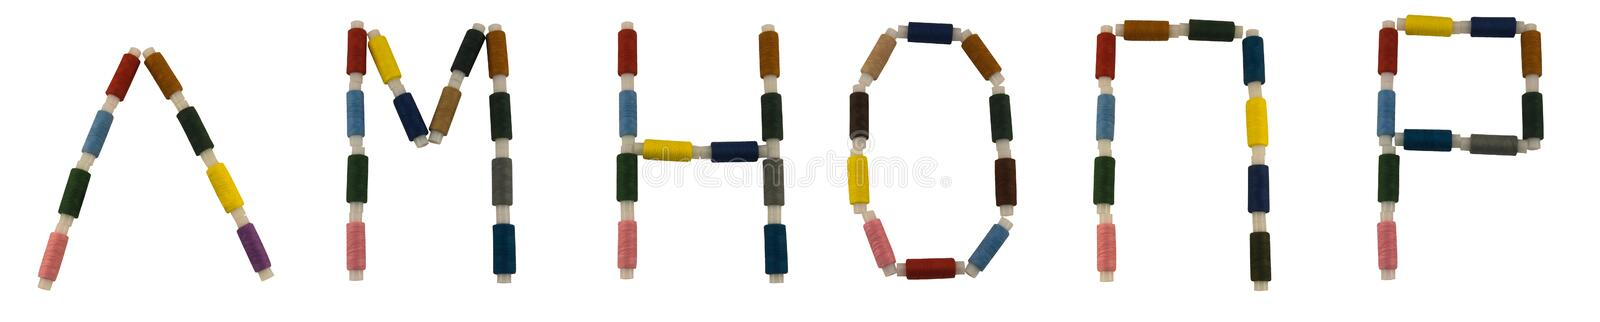 Isolated Font Russian alphabet made of colorful spools of thread for sewing. On white background stock photography